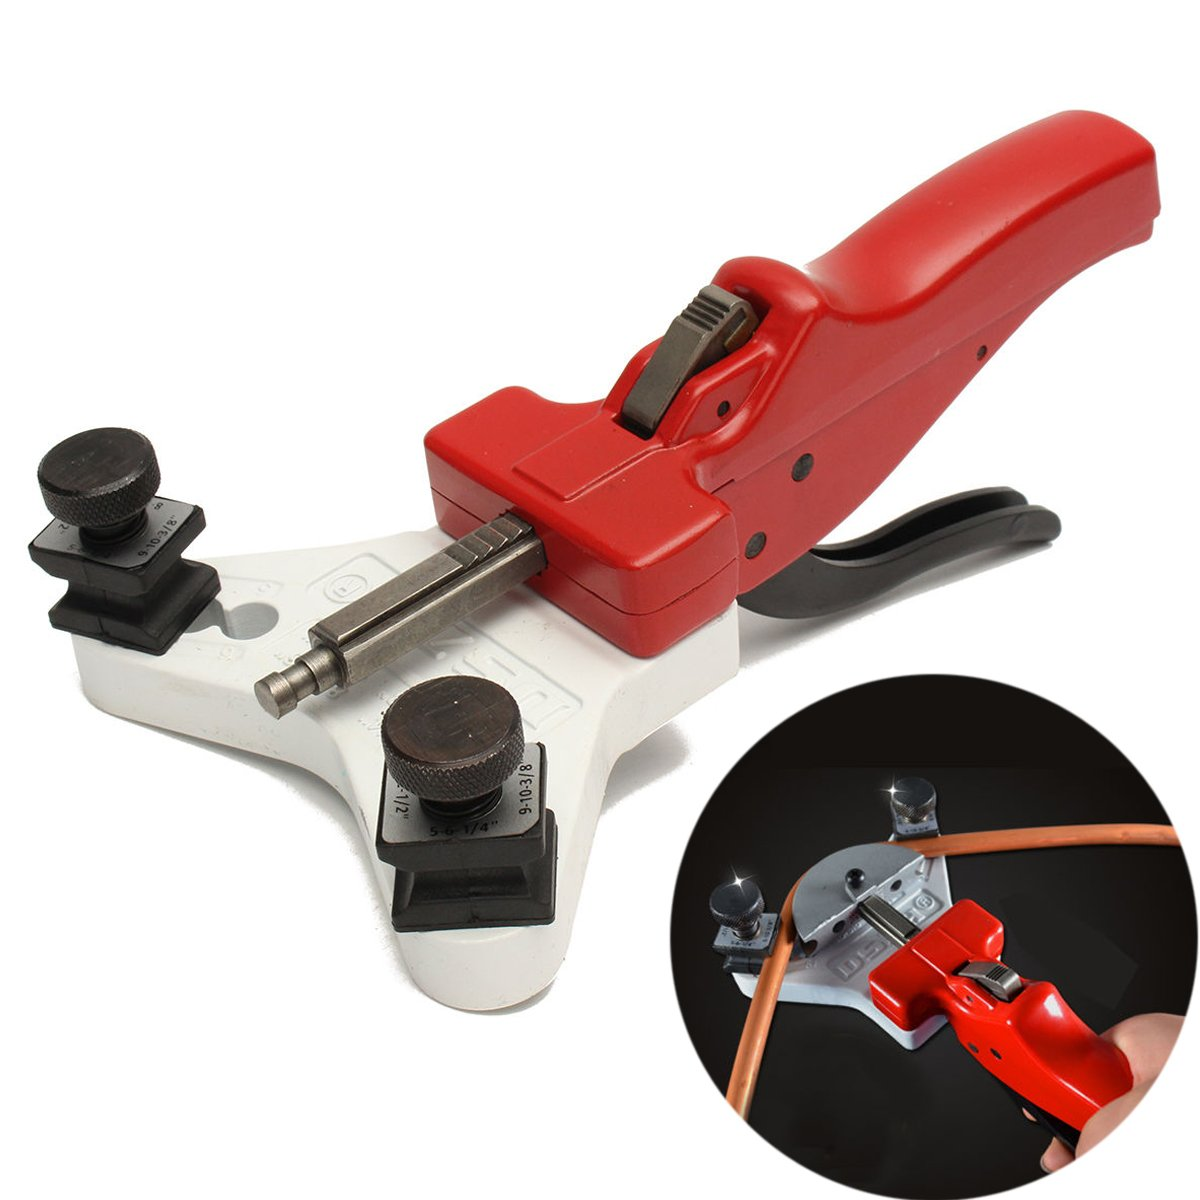 Huanyu Heavy Duty Tube Bender Manual Steel Pipe Copper Cutter Tool For 5/6/8/10/12mm